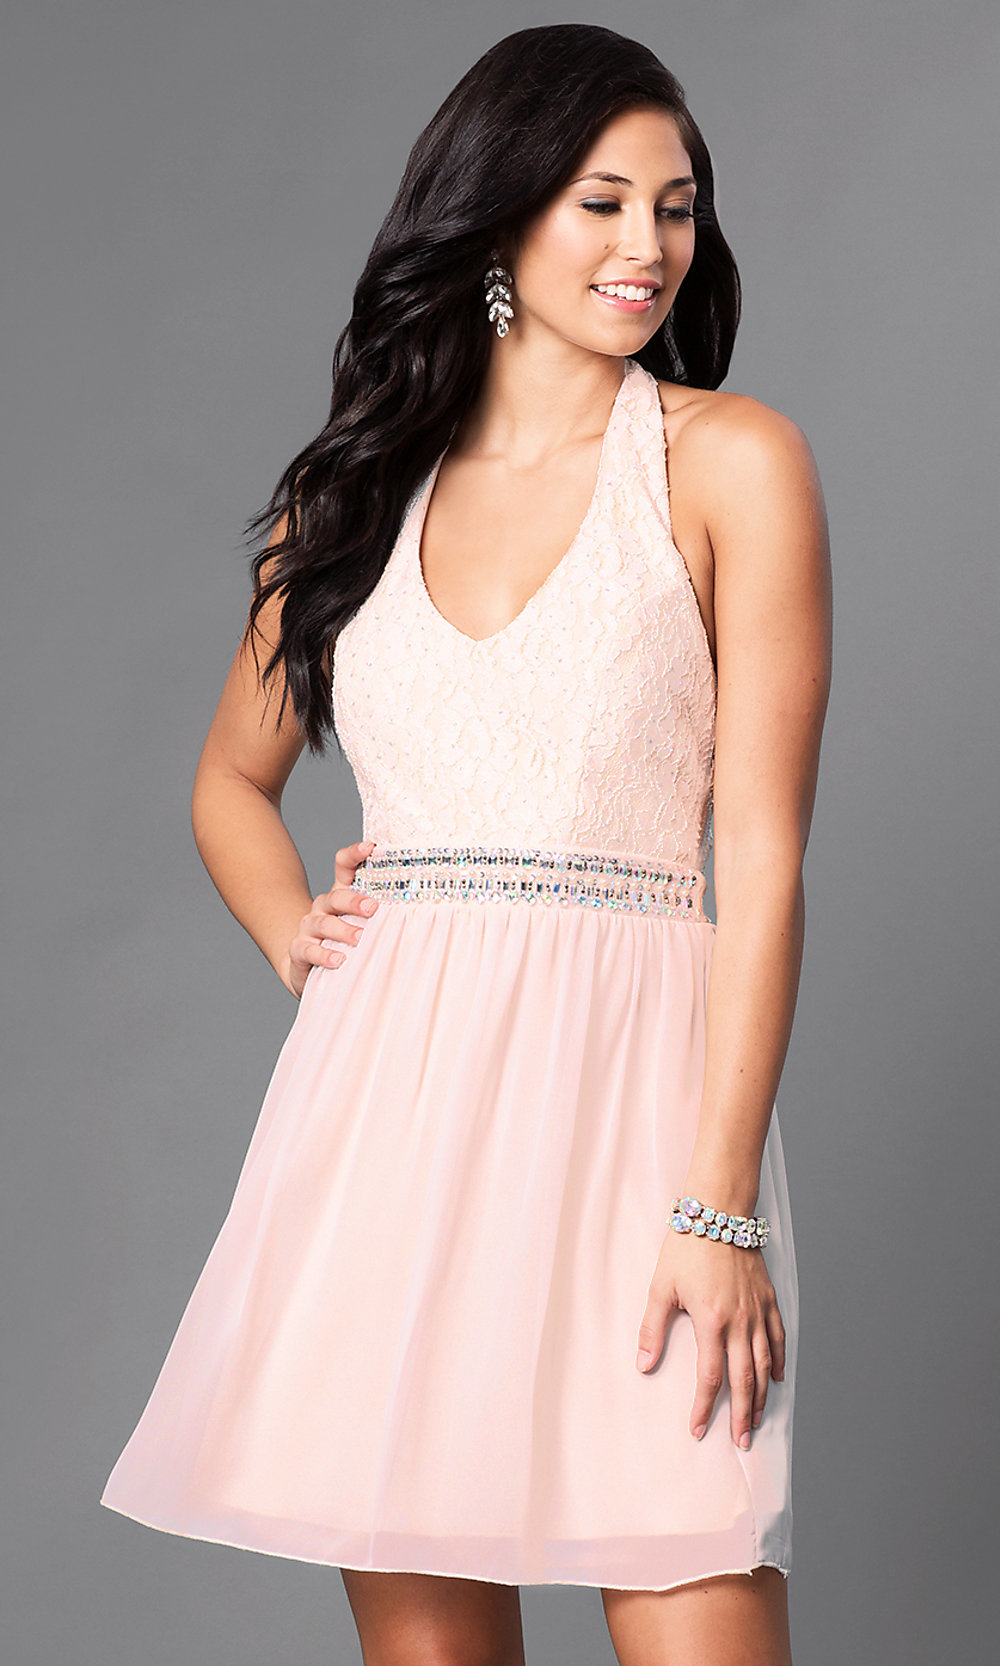 Short V Neck Lace Bodice Blush Pink Halter Dress